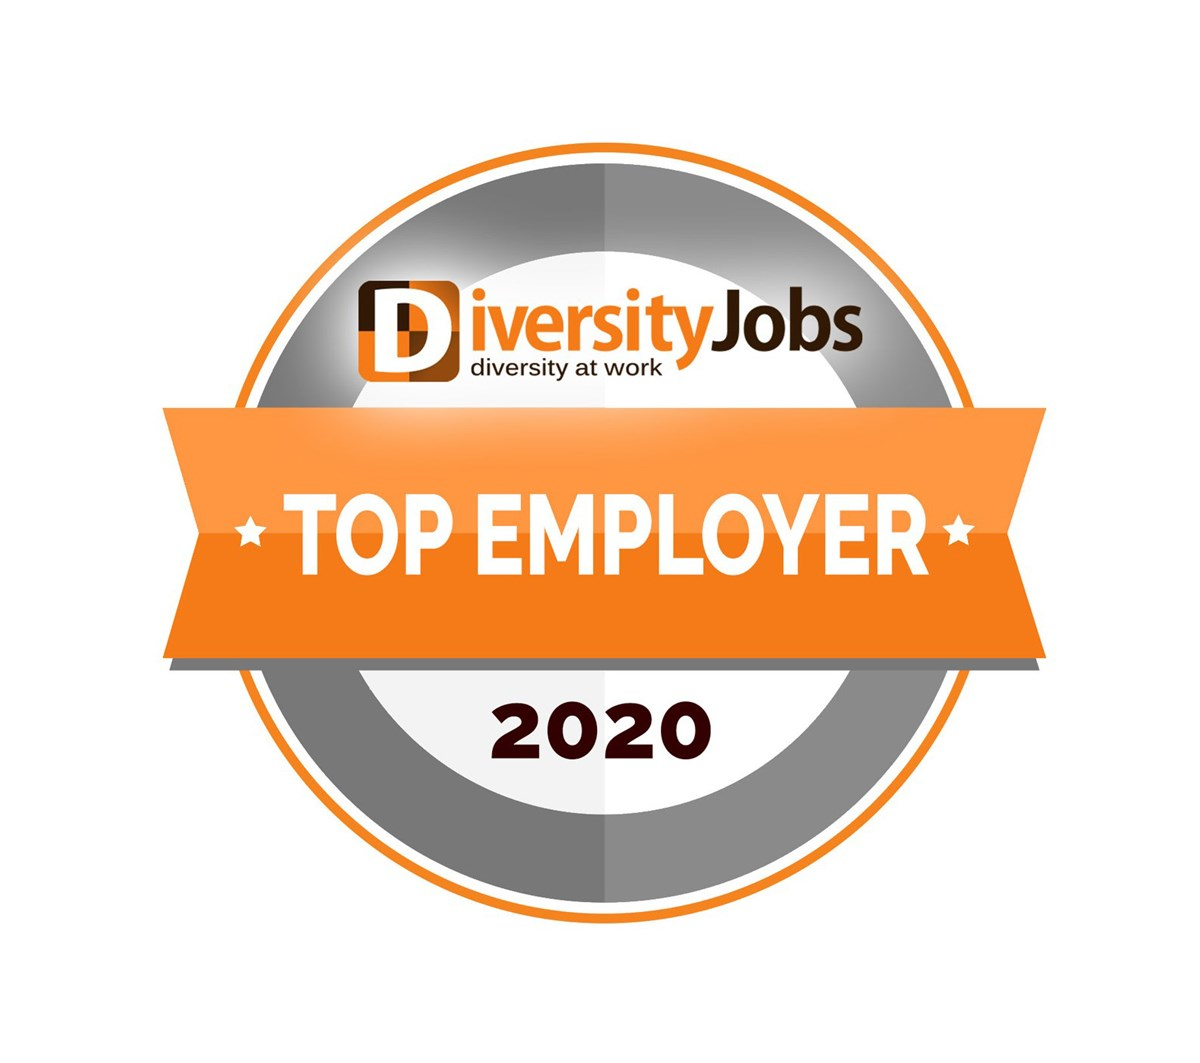 Badge recognizing UMass Lowell as a top diversity employer for 2020